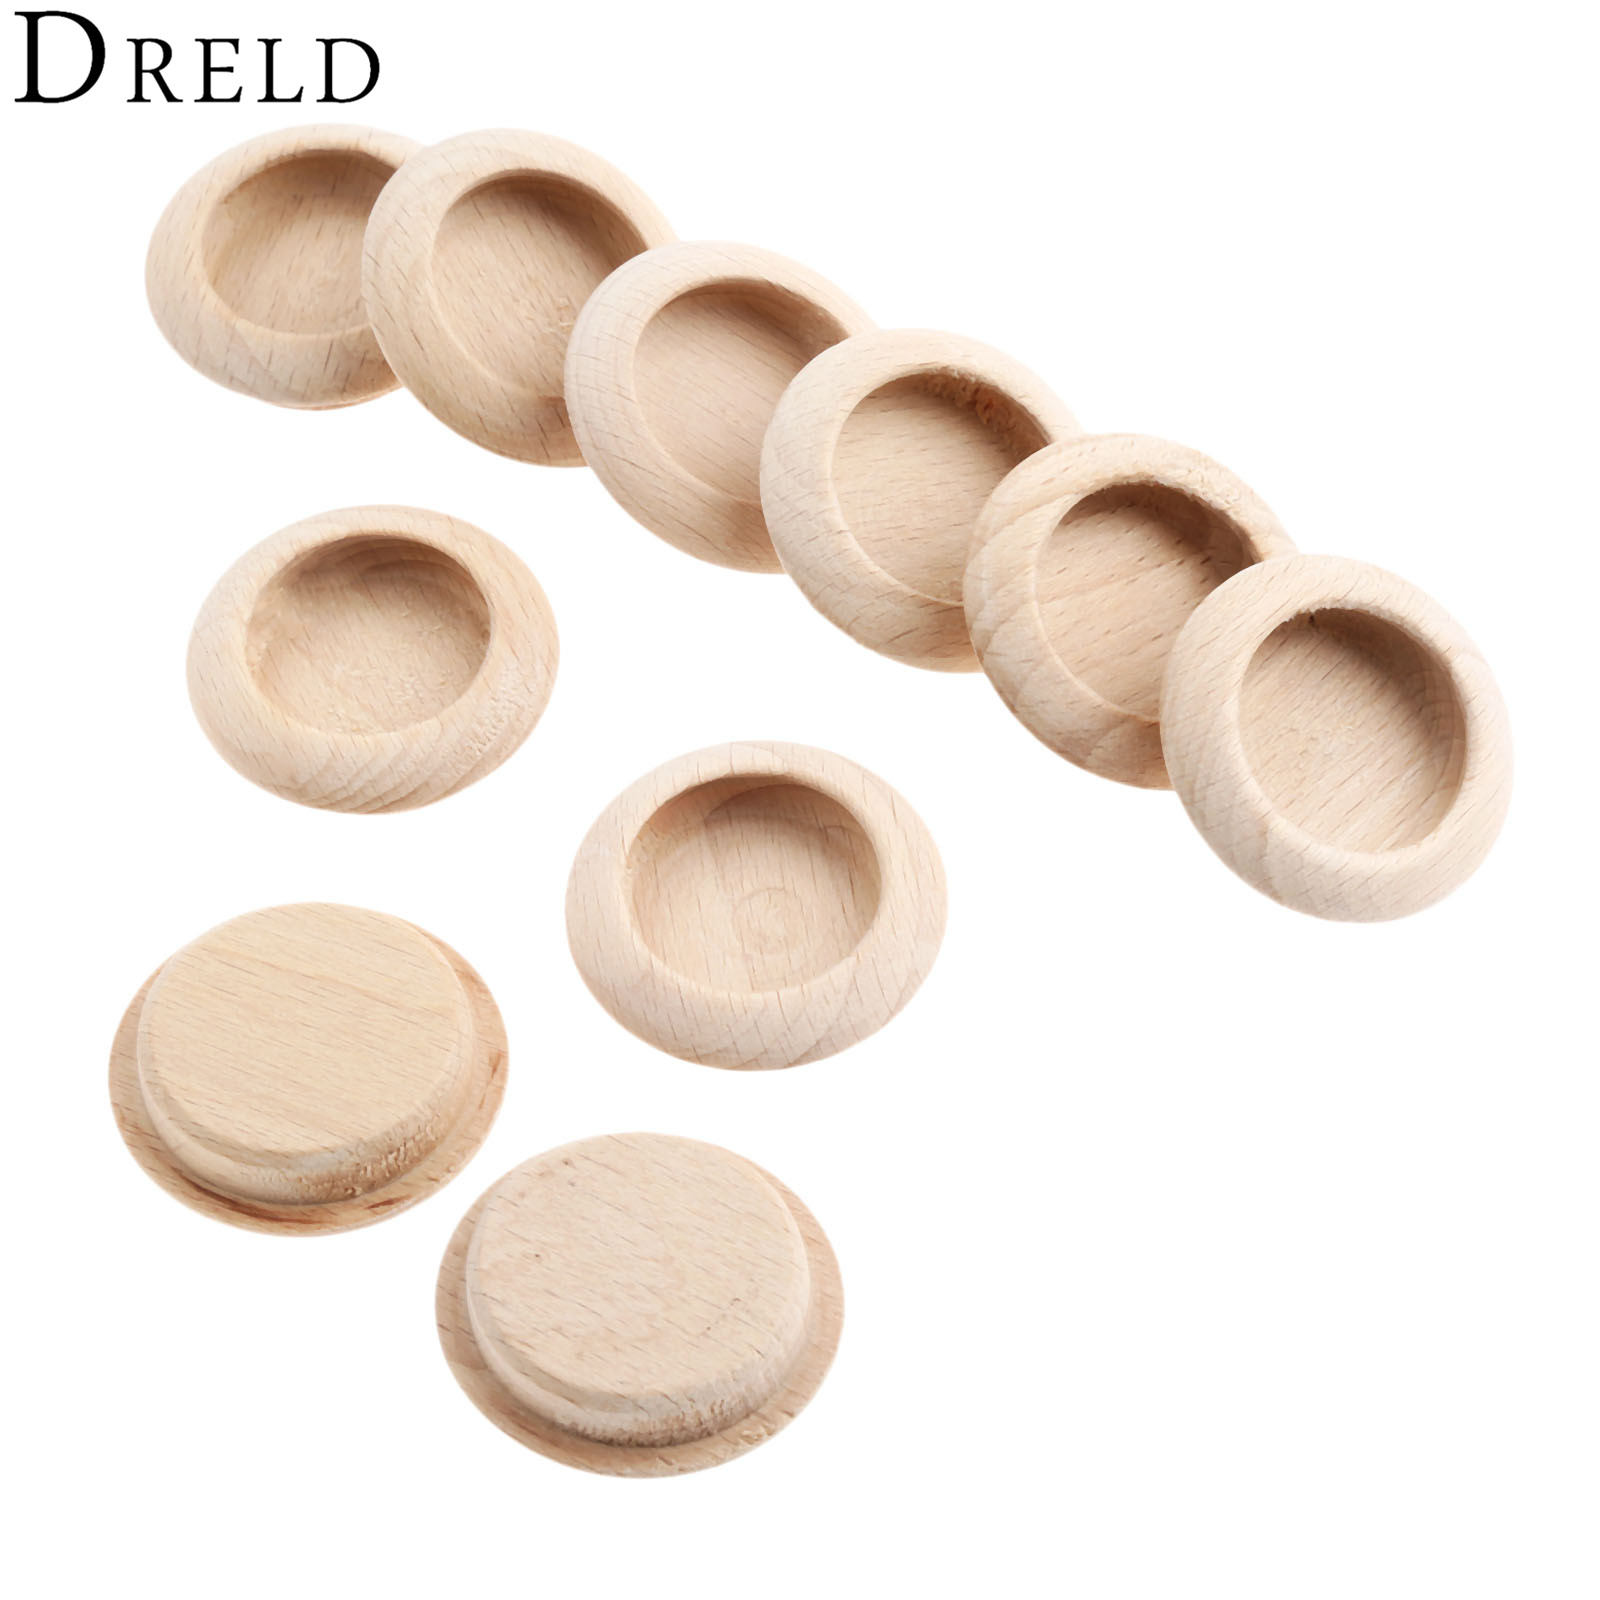 DRELD 10Pcs Wooden Concealed Furniture Handles Kitchen Cabinet Drawer Knobs Cupboard Closet Door Wood Pulls Furniture Hardware chic sunflower pewter kitchen cabinet knobs drawer dresser pulls handles cupboard closet door knob modern furniture hardware